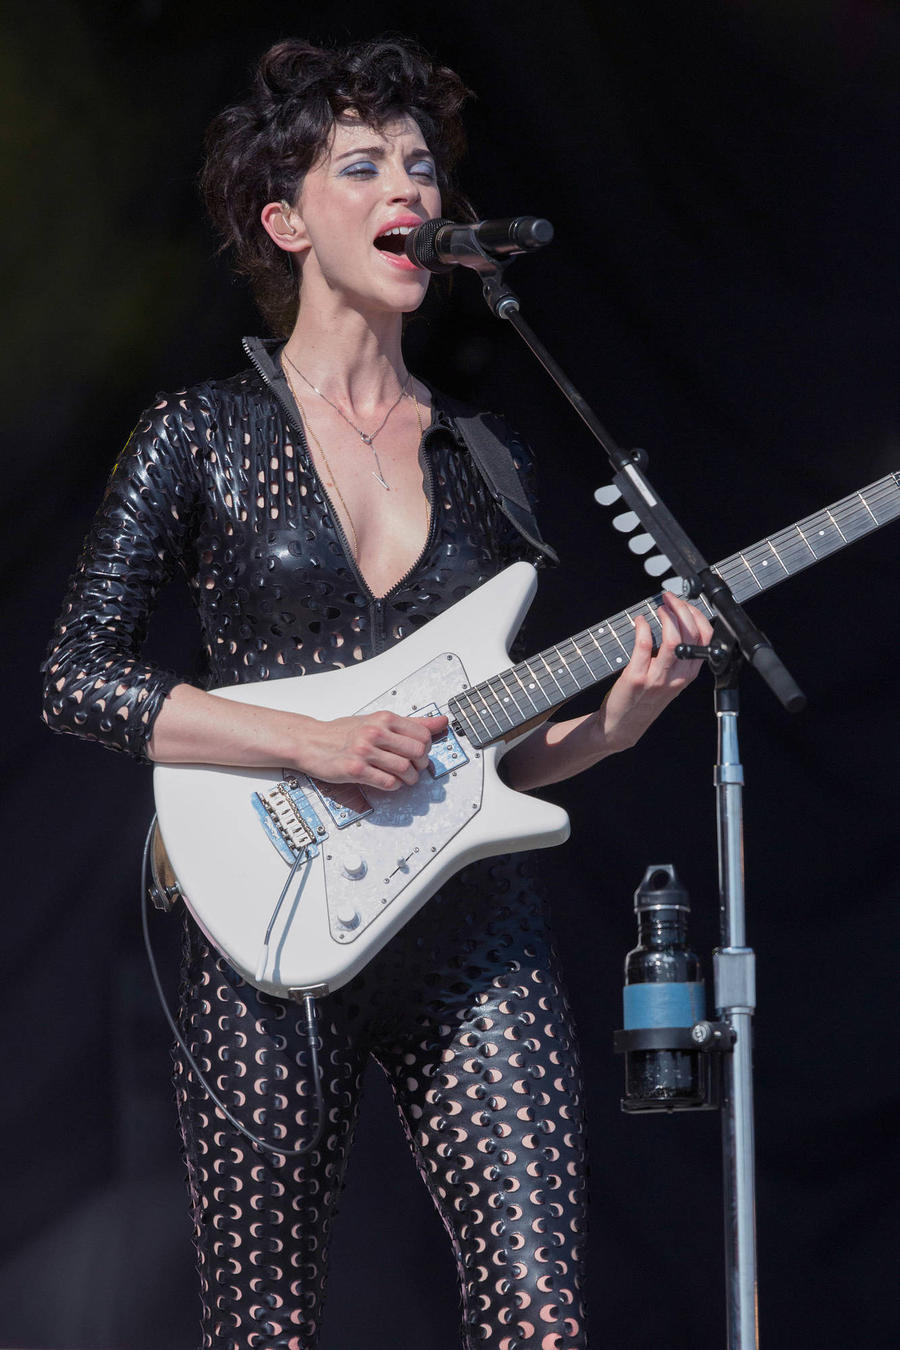 St. Vincent Names Guitar In Honour Of David Bowie